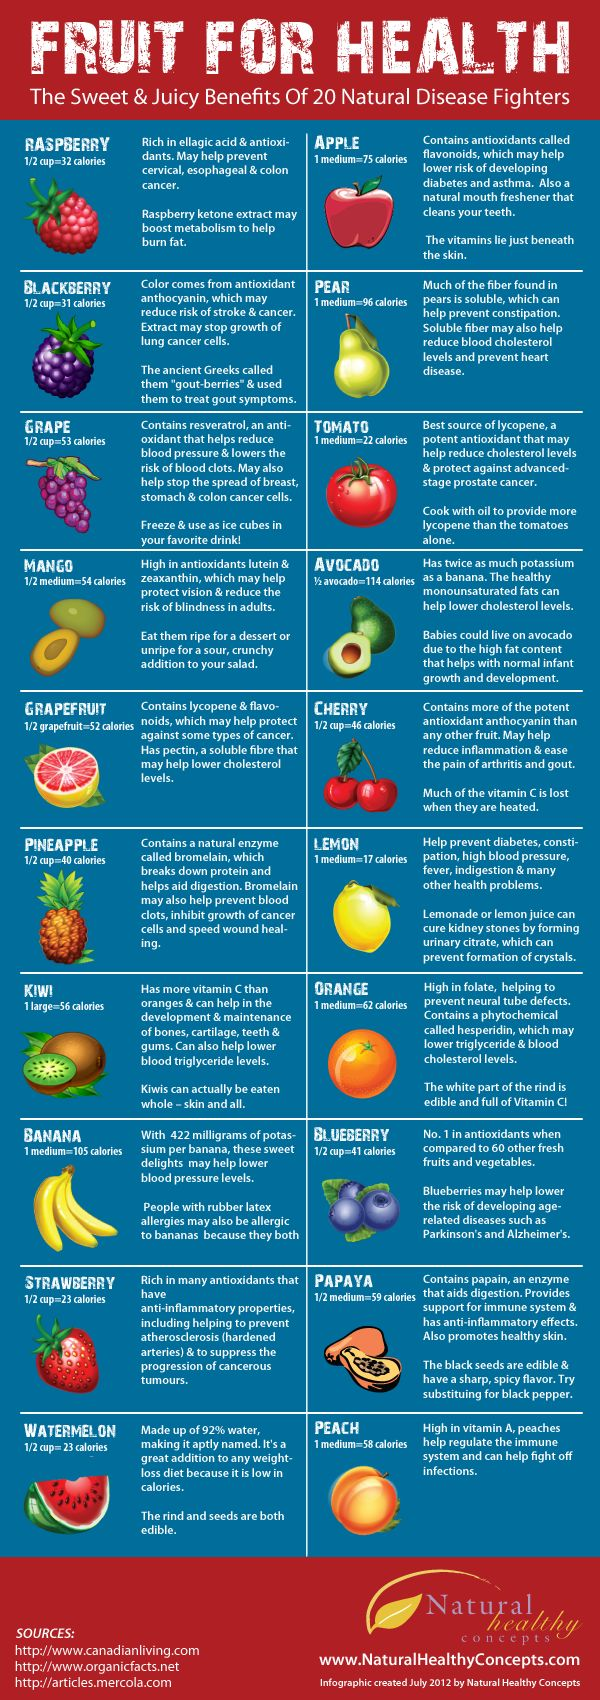 Fruit for Health [infographic] | Daily Infographic